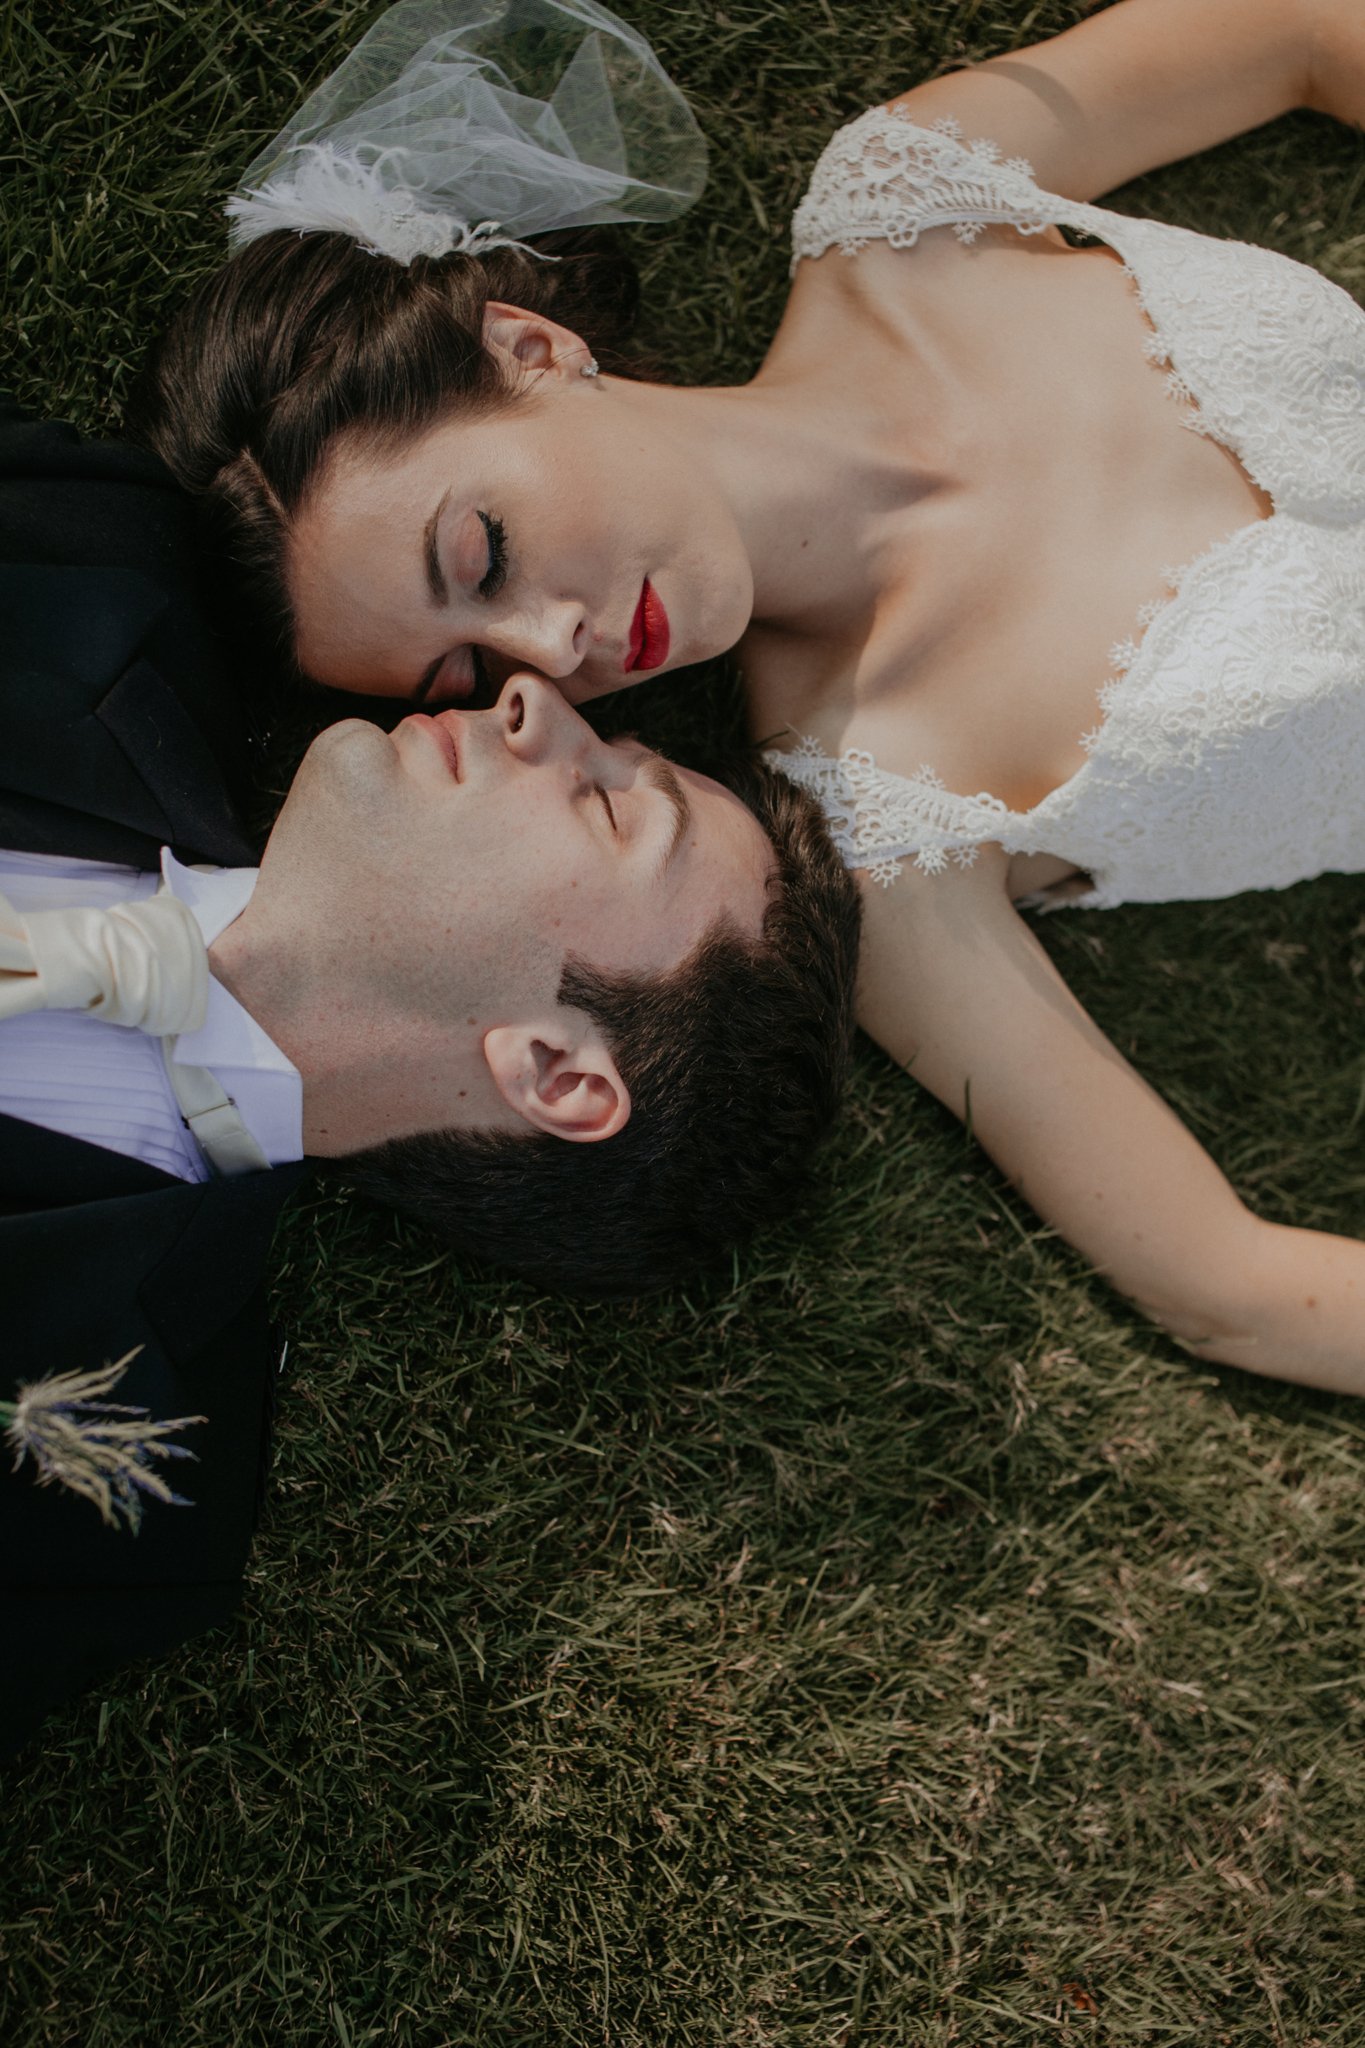 Bride and groom laying in grass romantic wedding photo